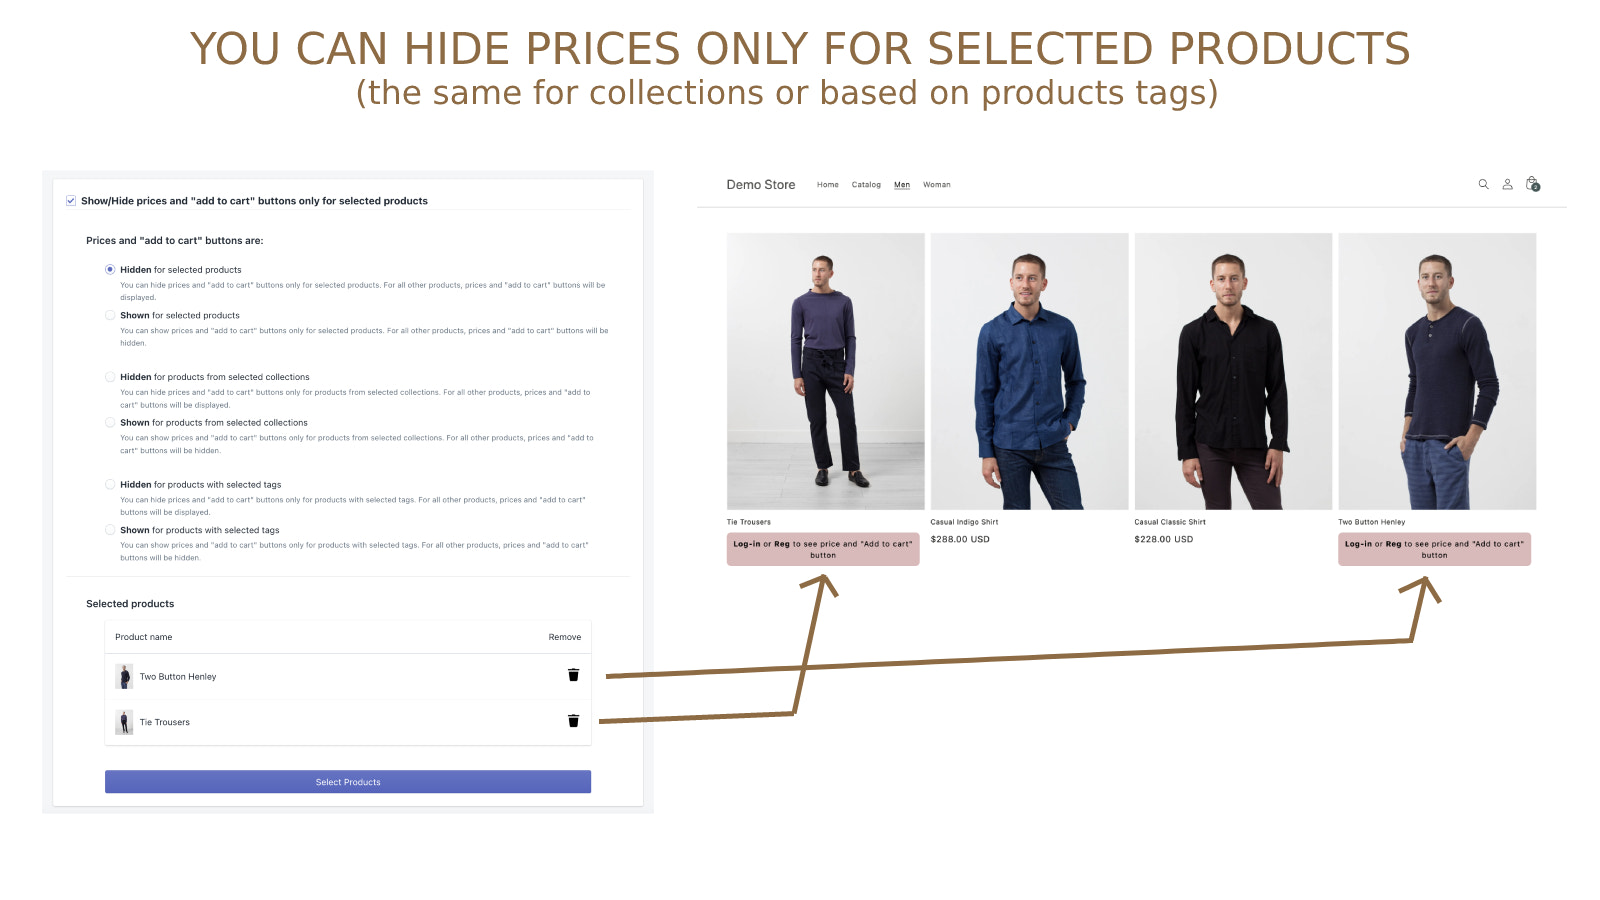 You can hide prices only for selected products